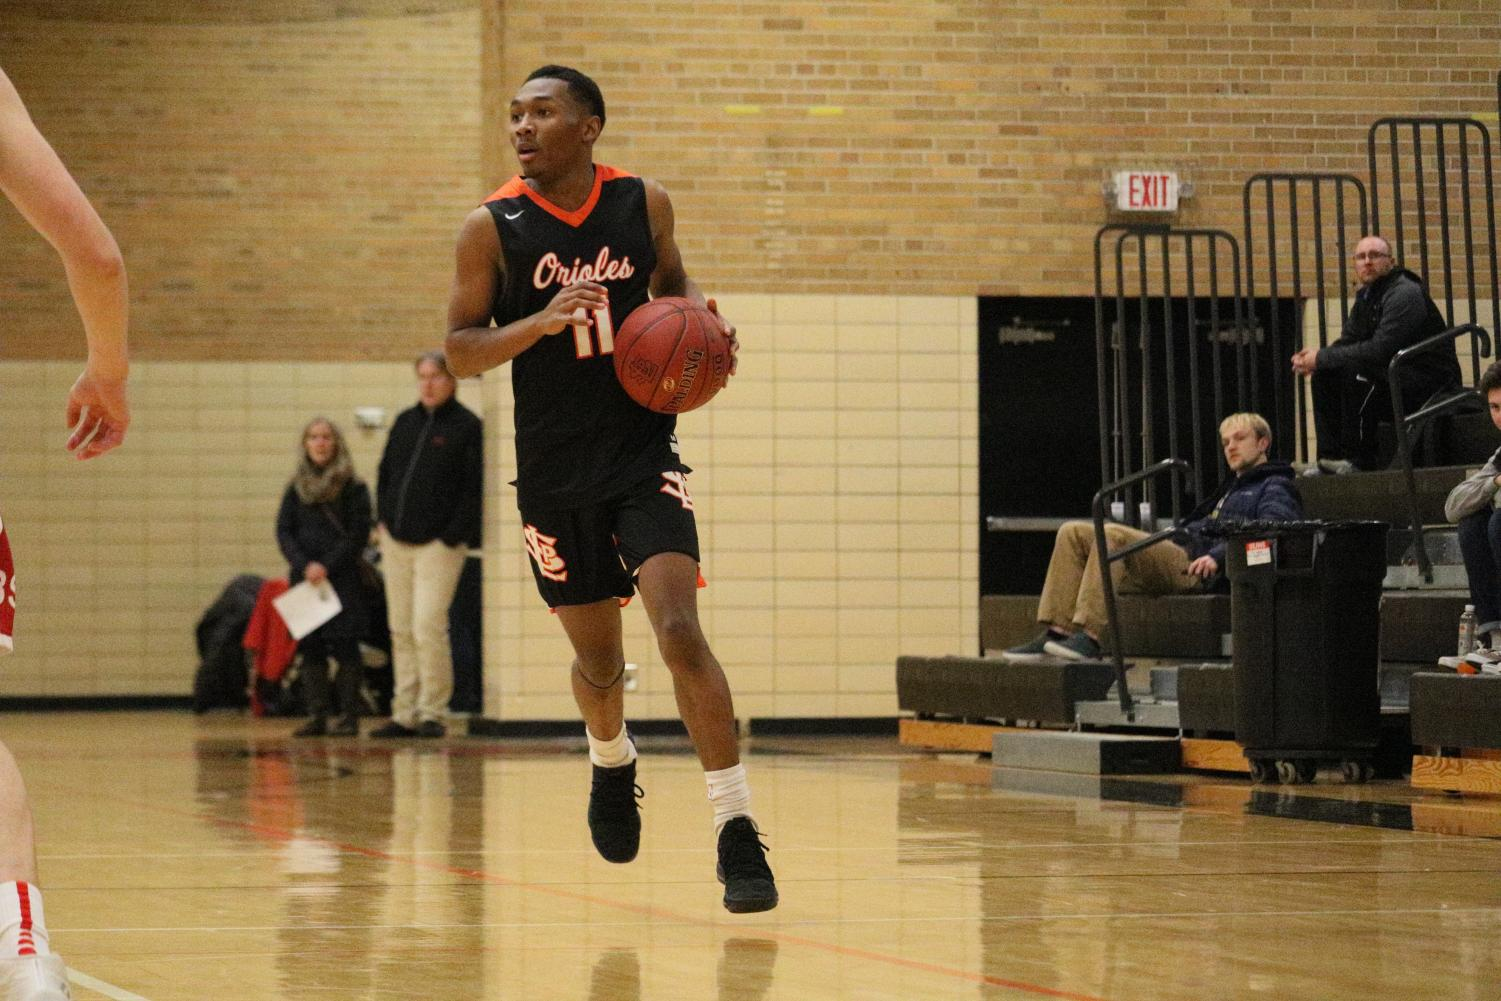 Senior Cire Mayfield dribbles down the court in the Orioles win over Benilde Jan. 30. Mayfield is ten points away from his 1000th career point. Mayfield will look to make history as the Orioles play 7 p.m. Feb. 9 at the high school against Chaska.